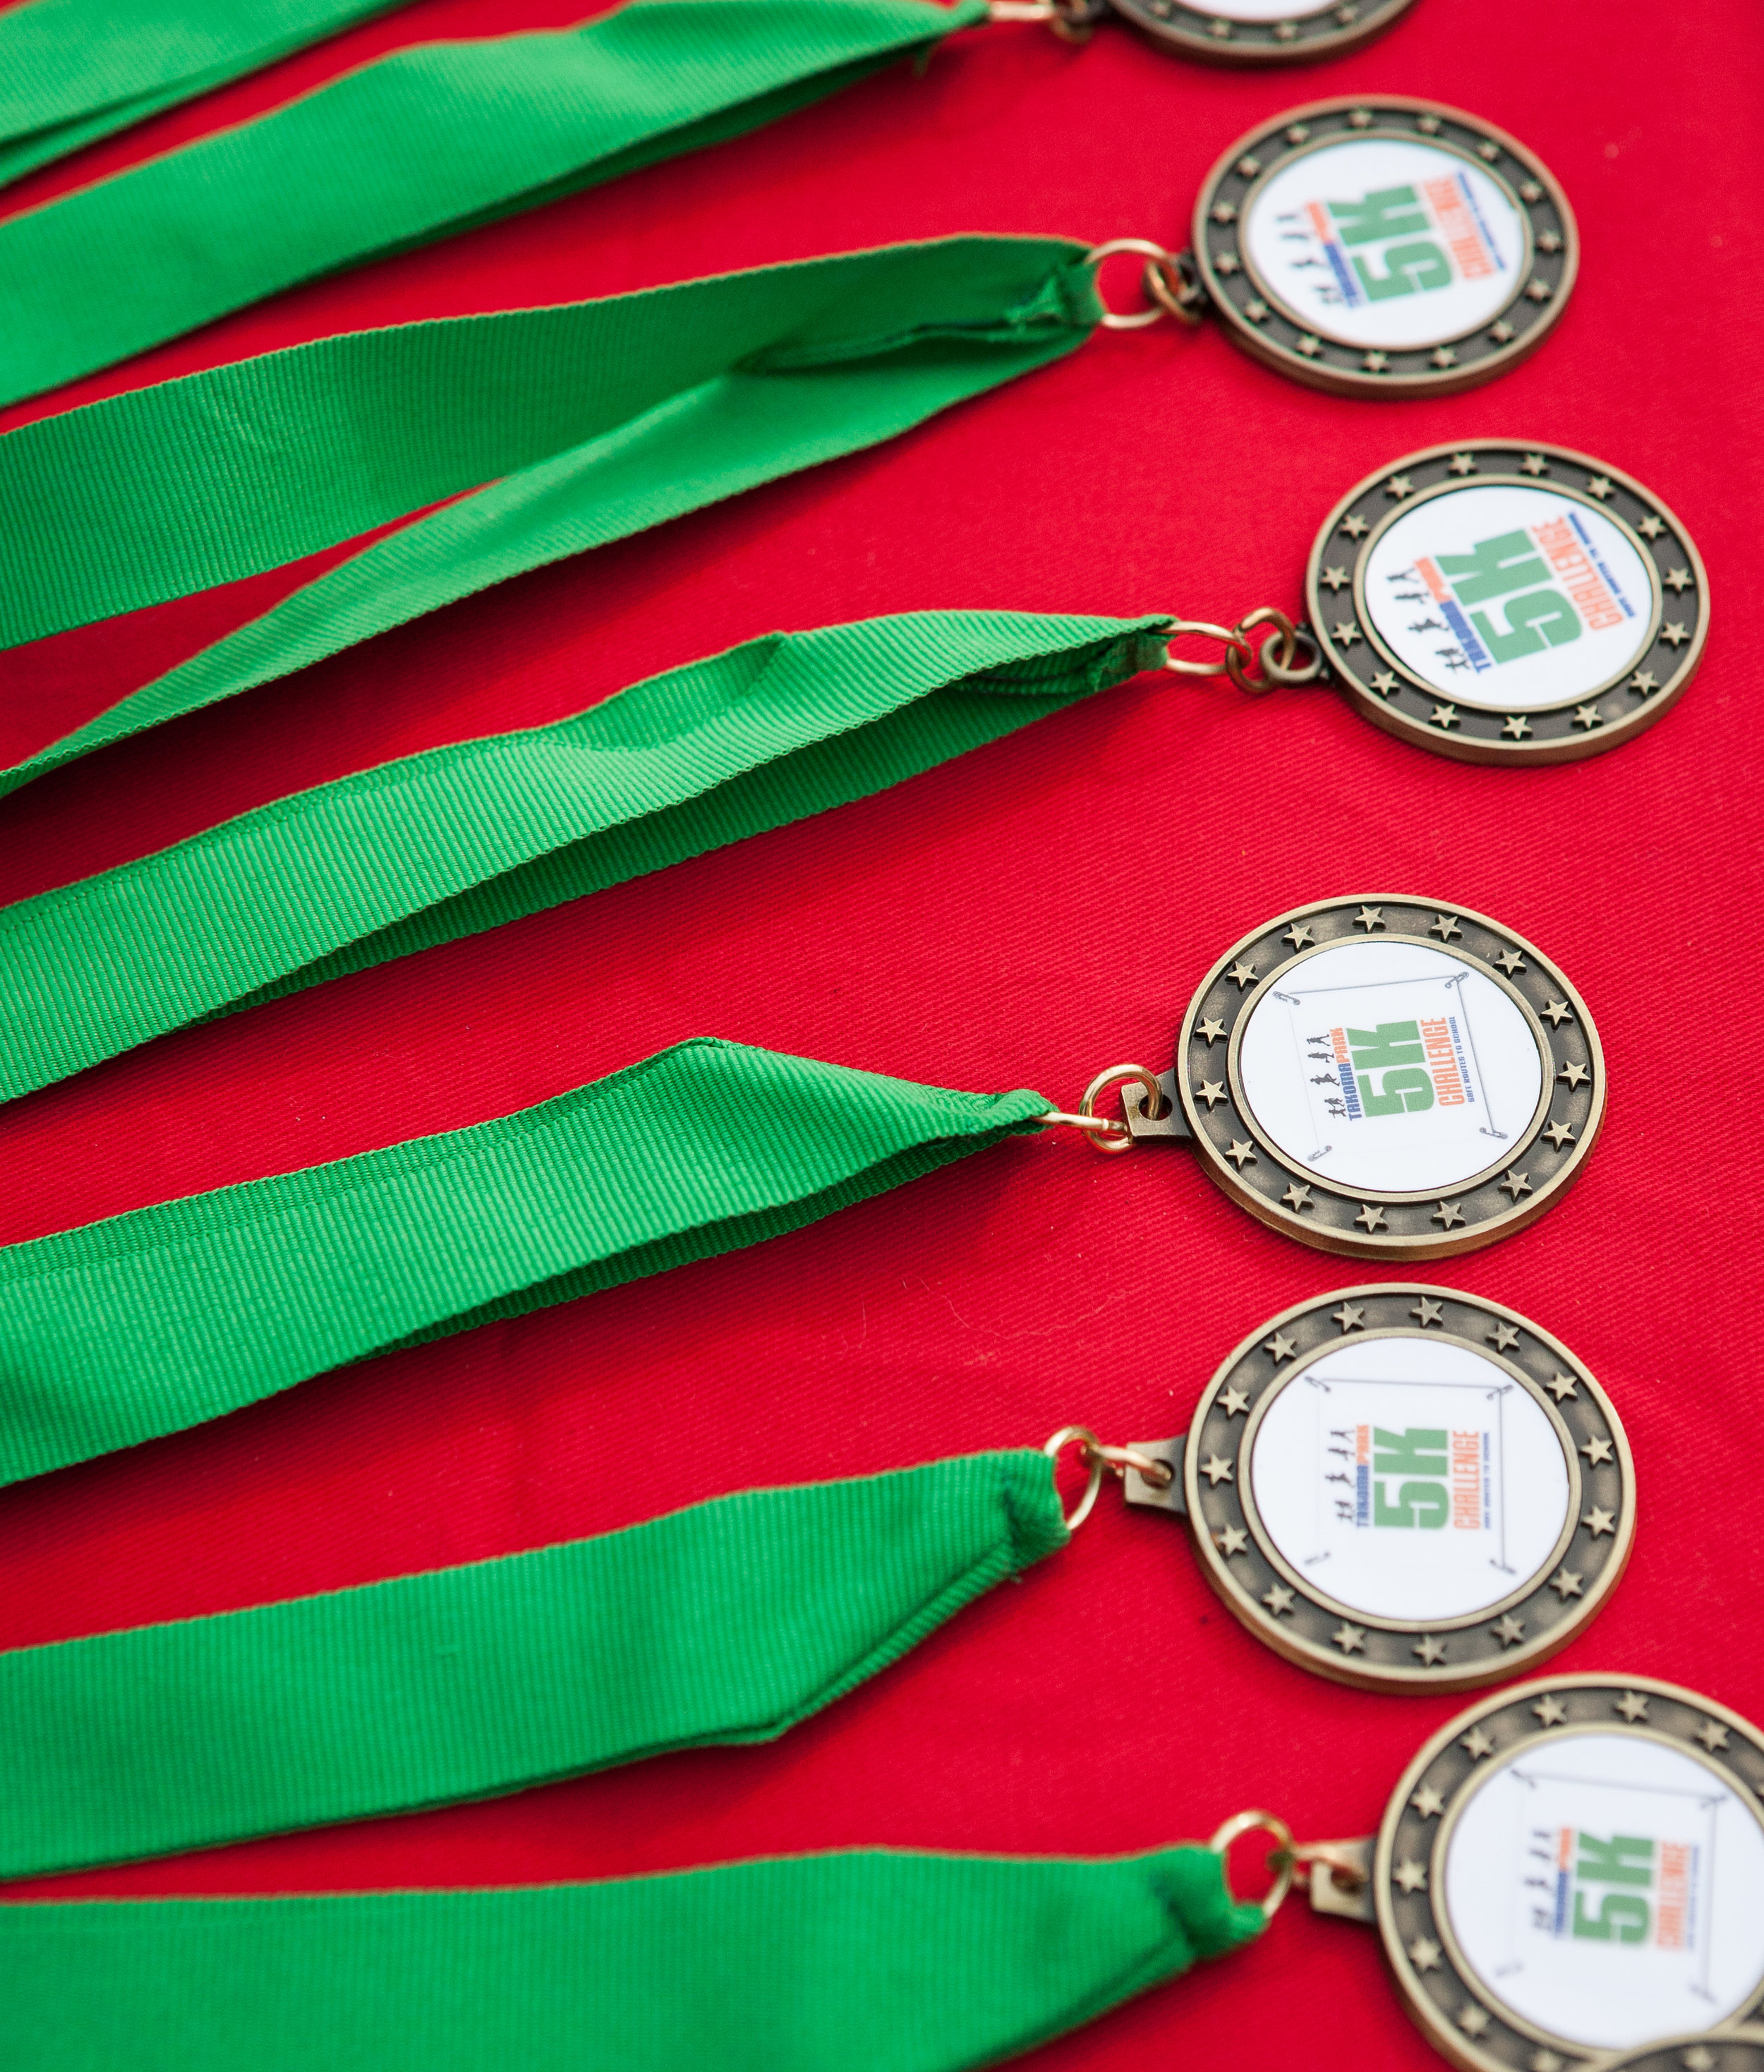 Everyones a winner in Takoma Park. Some winners will take home medals!